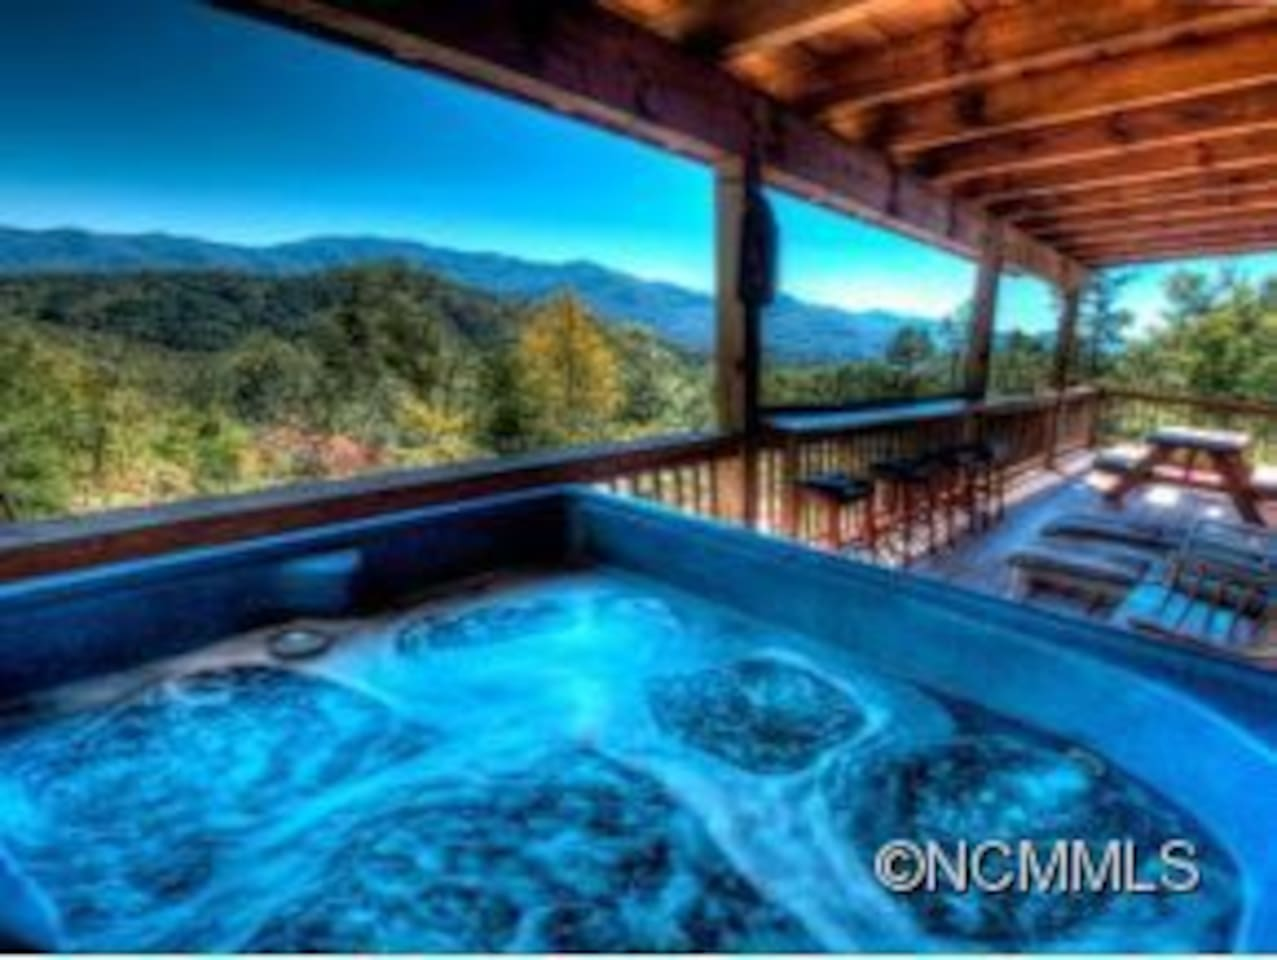 Enjoy the fabulous view from the hot tub